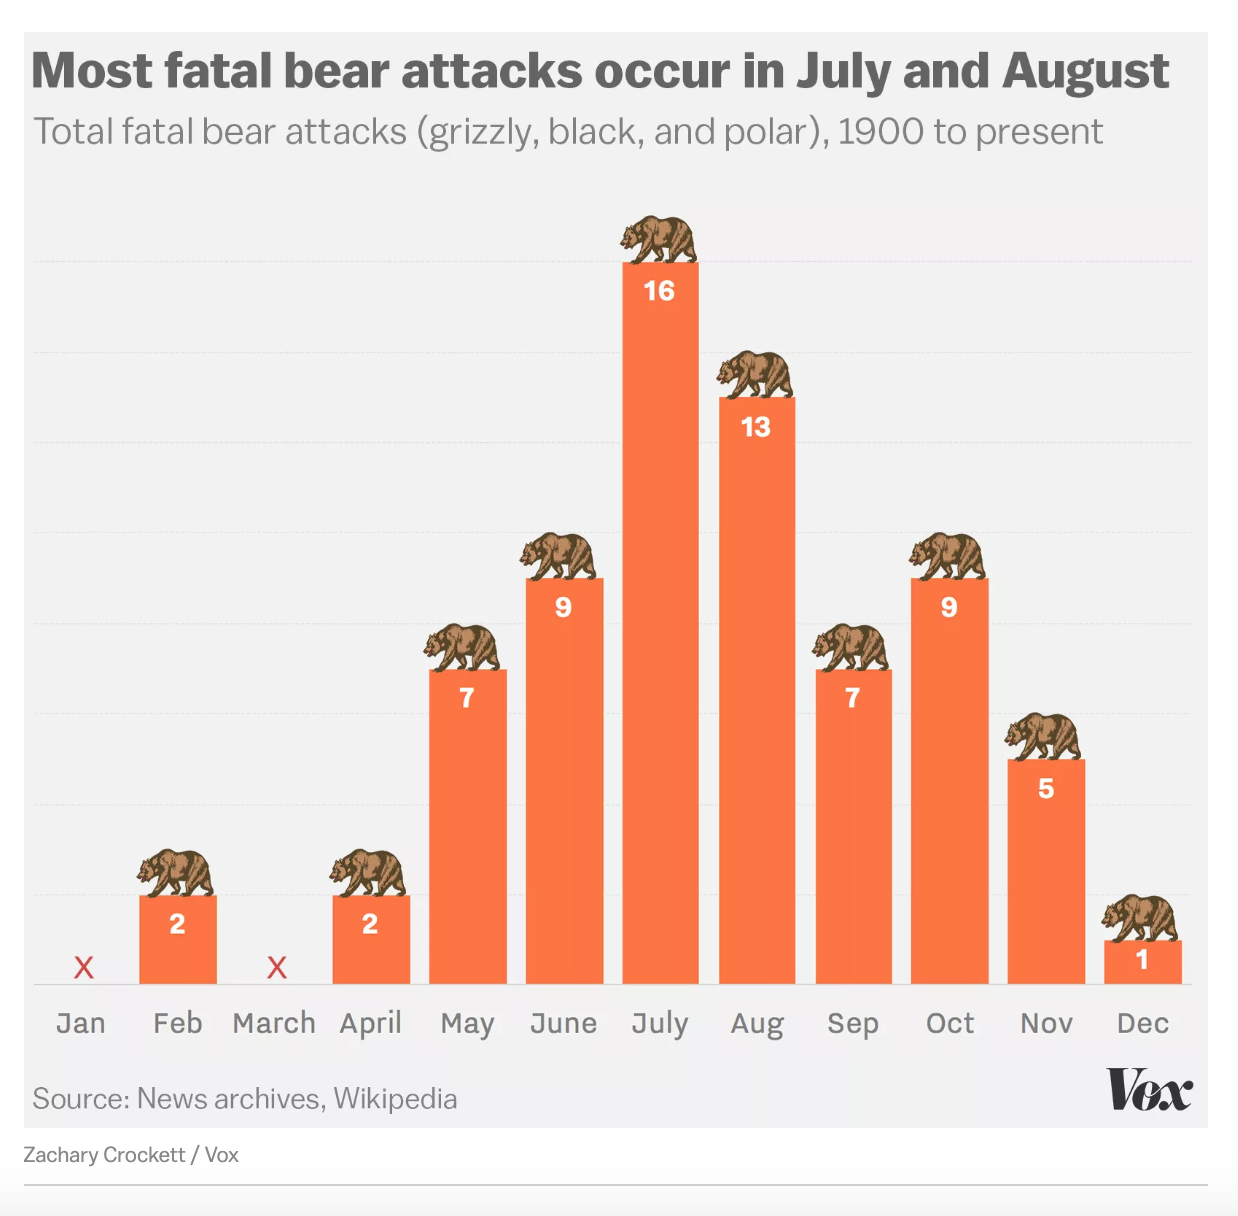 2019/W21: When are you most likely to be killed by a bear? - dataset